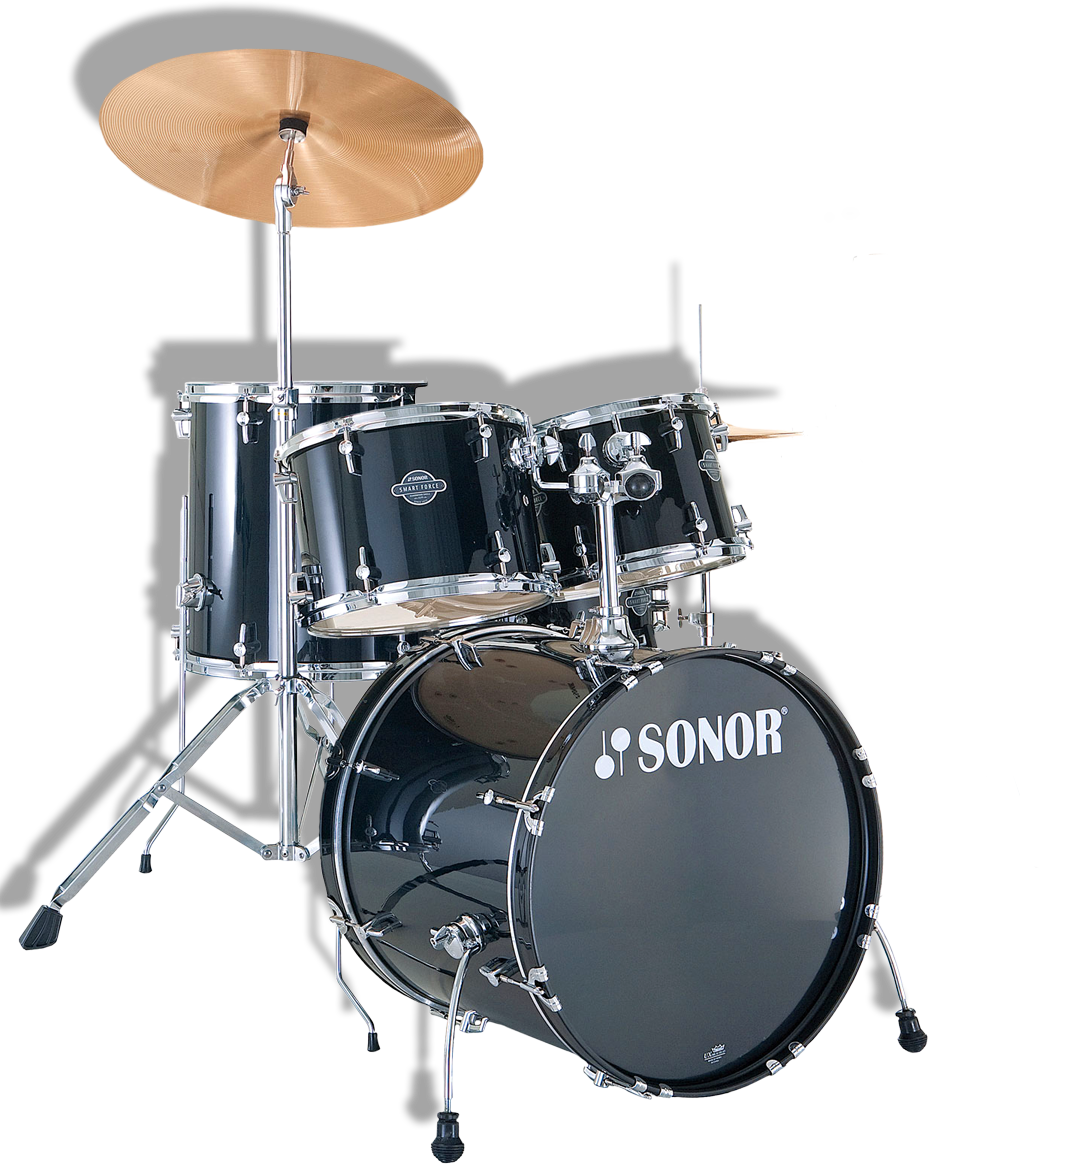 Batterie-Sonor Smart-BAT-600